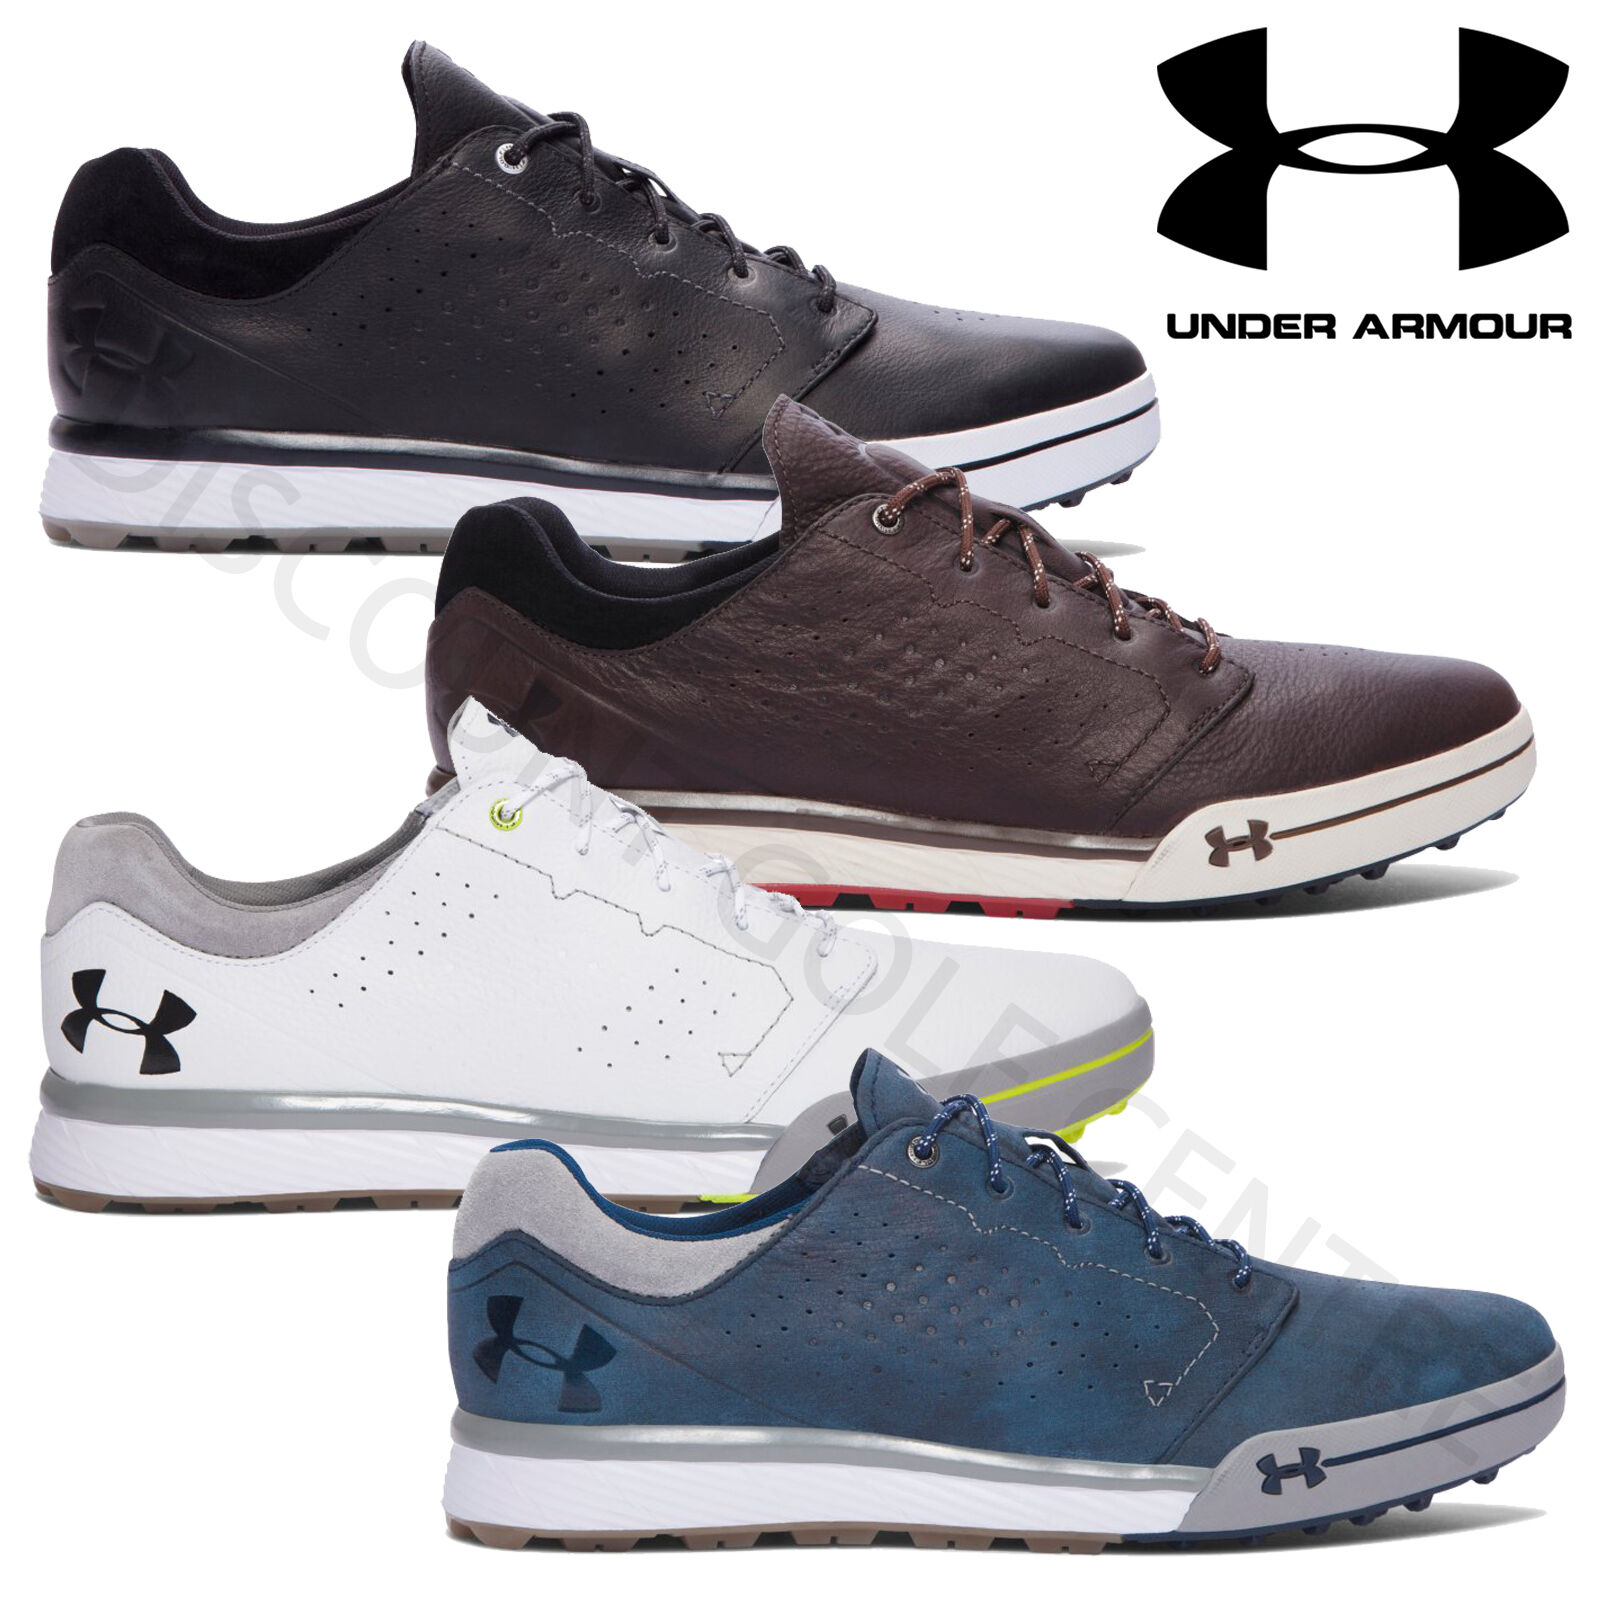 under armour mens 2017 ua tempo hybrid leather waterproof spikeless golf shoes. Black Bedroom Furniture Sets. Home Design Ideas